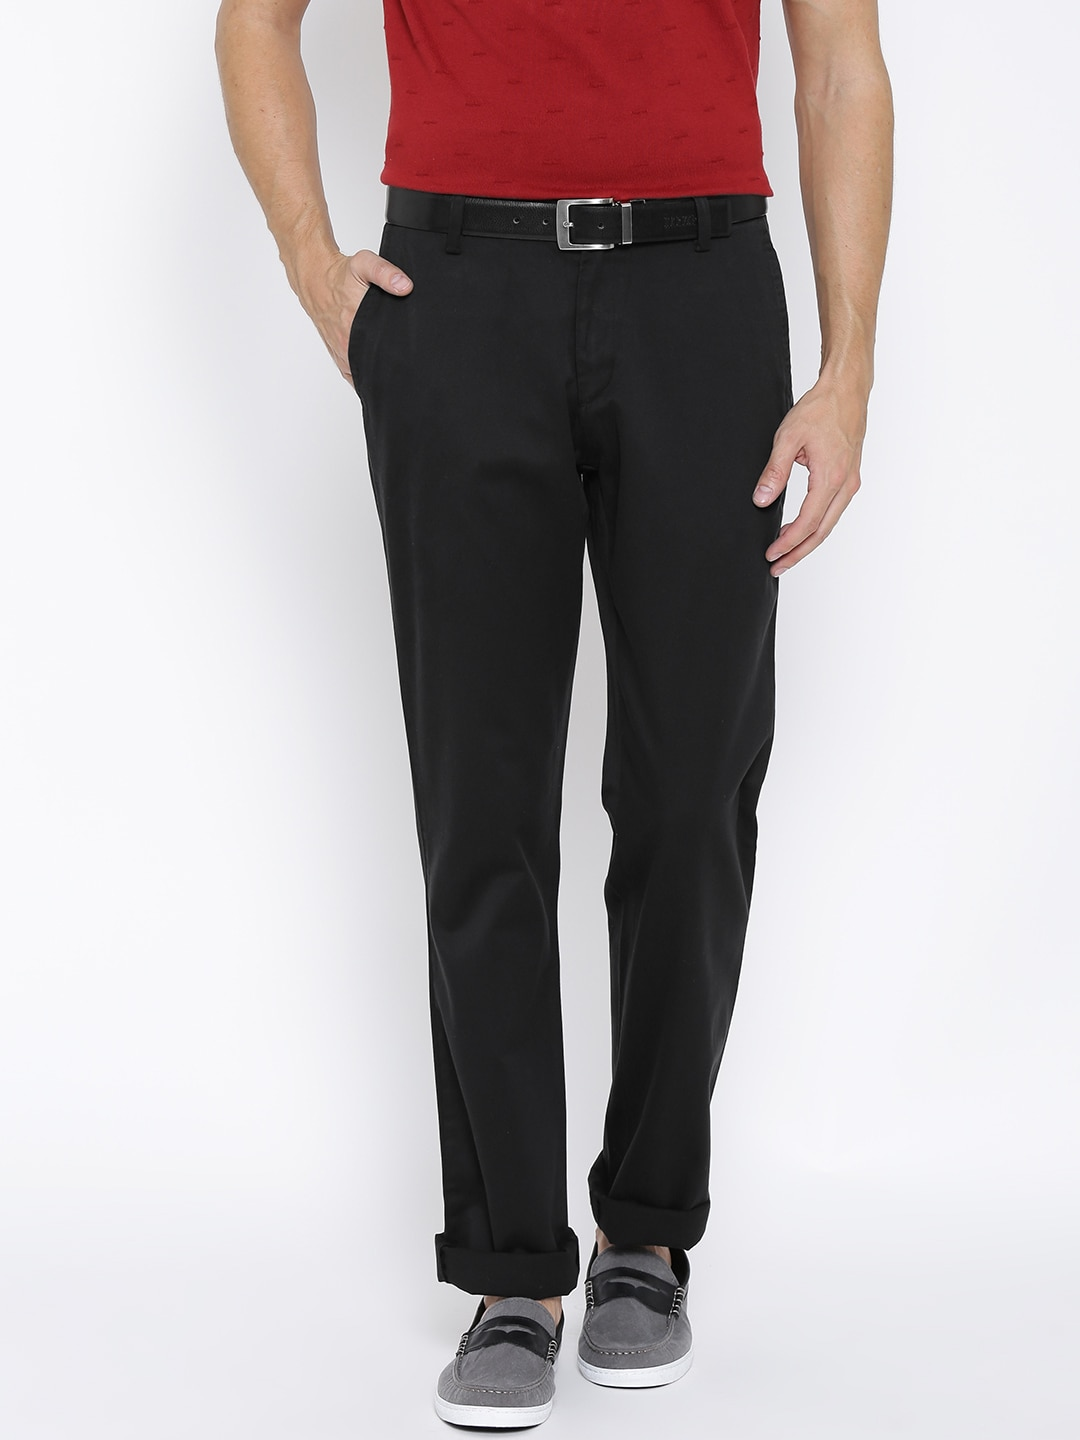 U S  Polo Assn  Men Black Tailored Fit Trousers